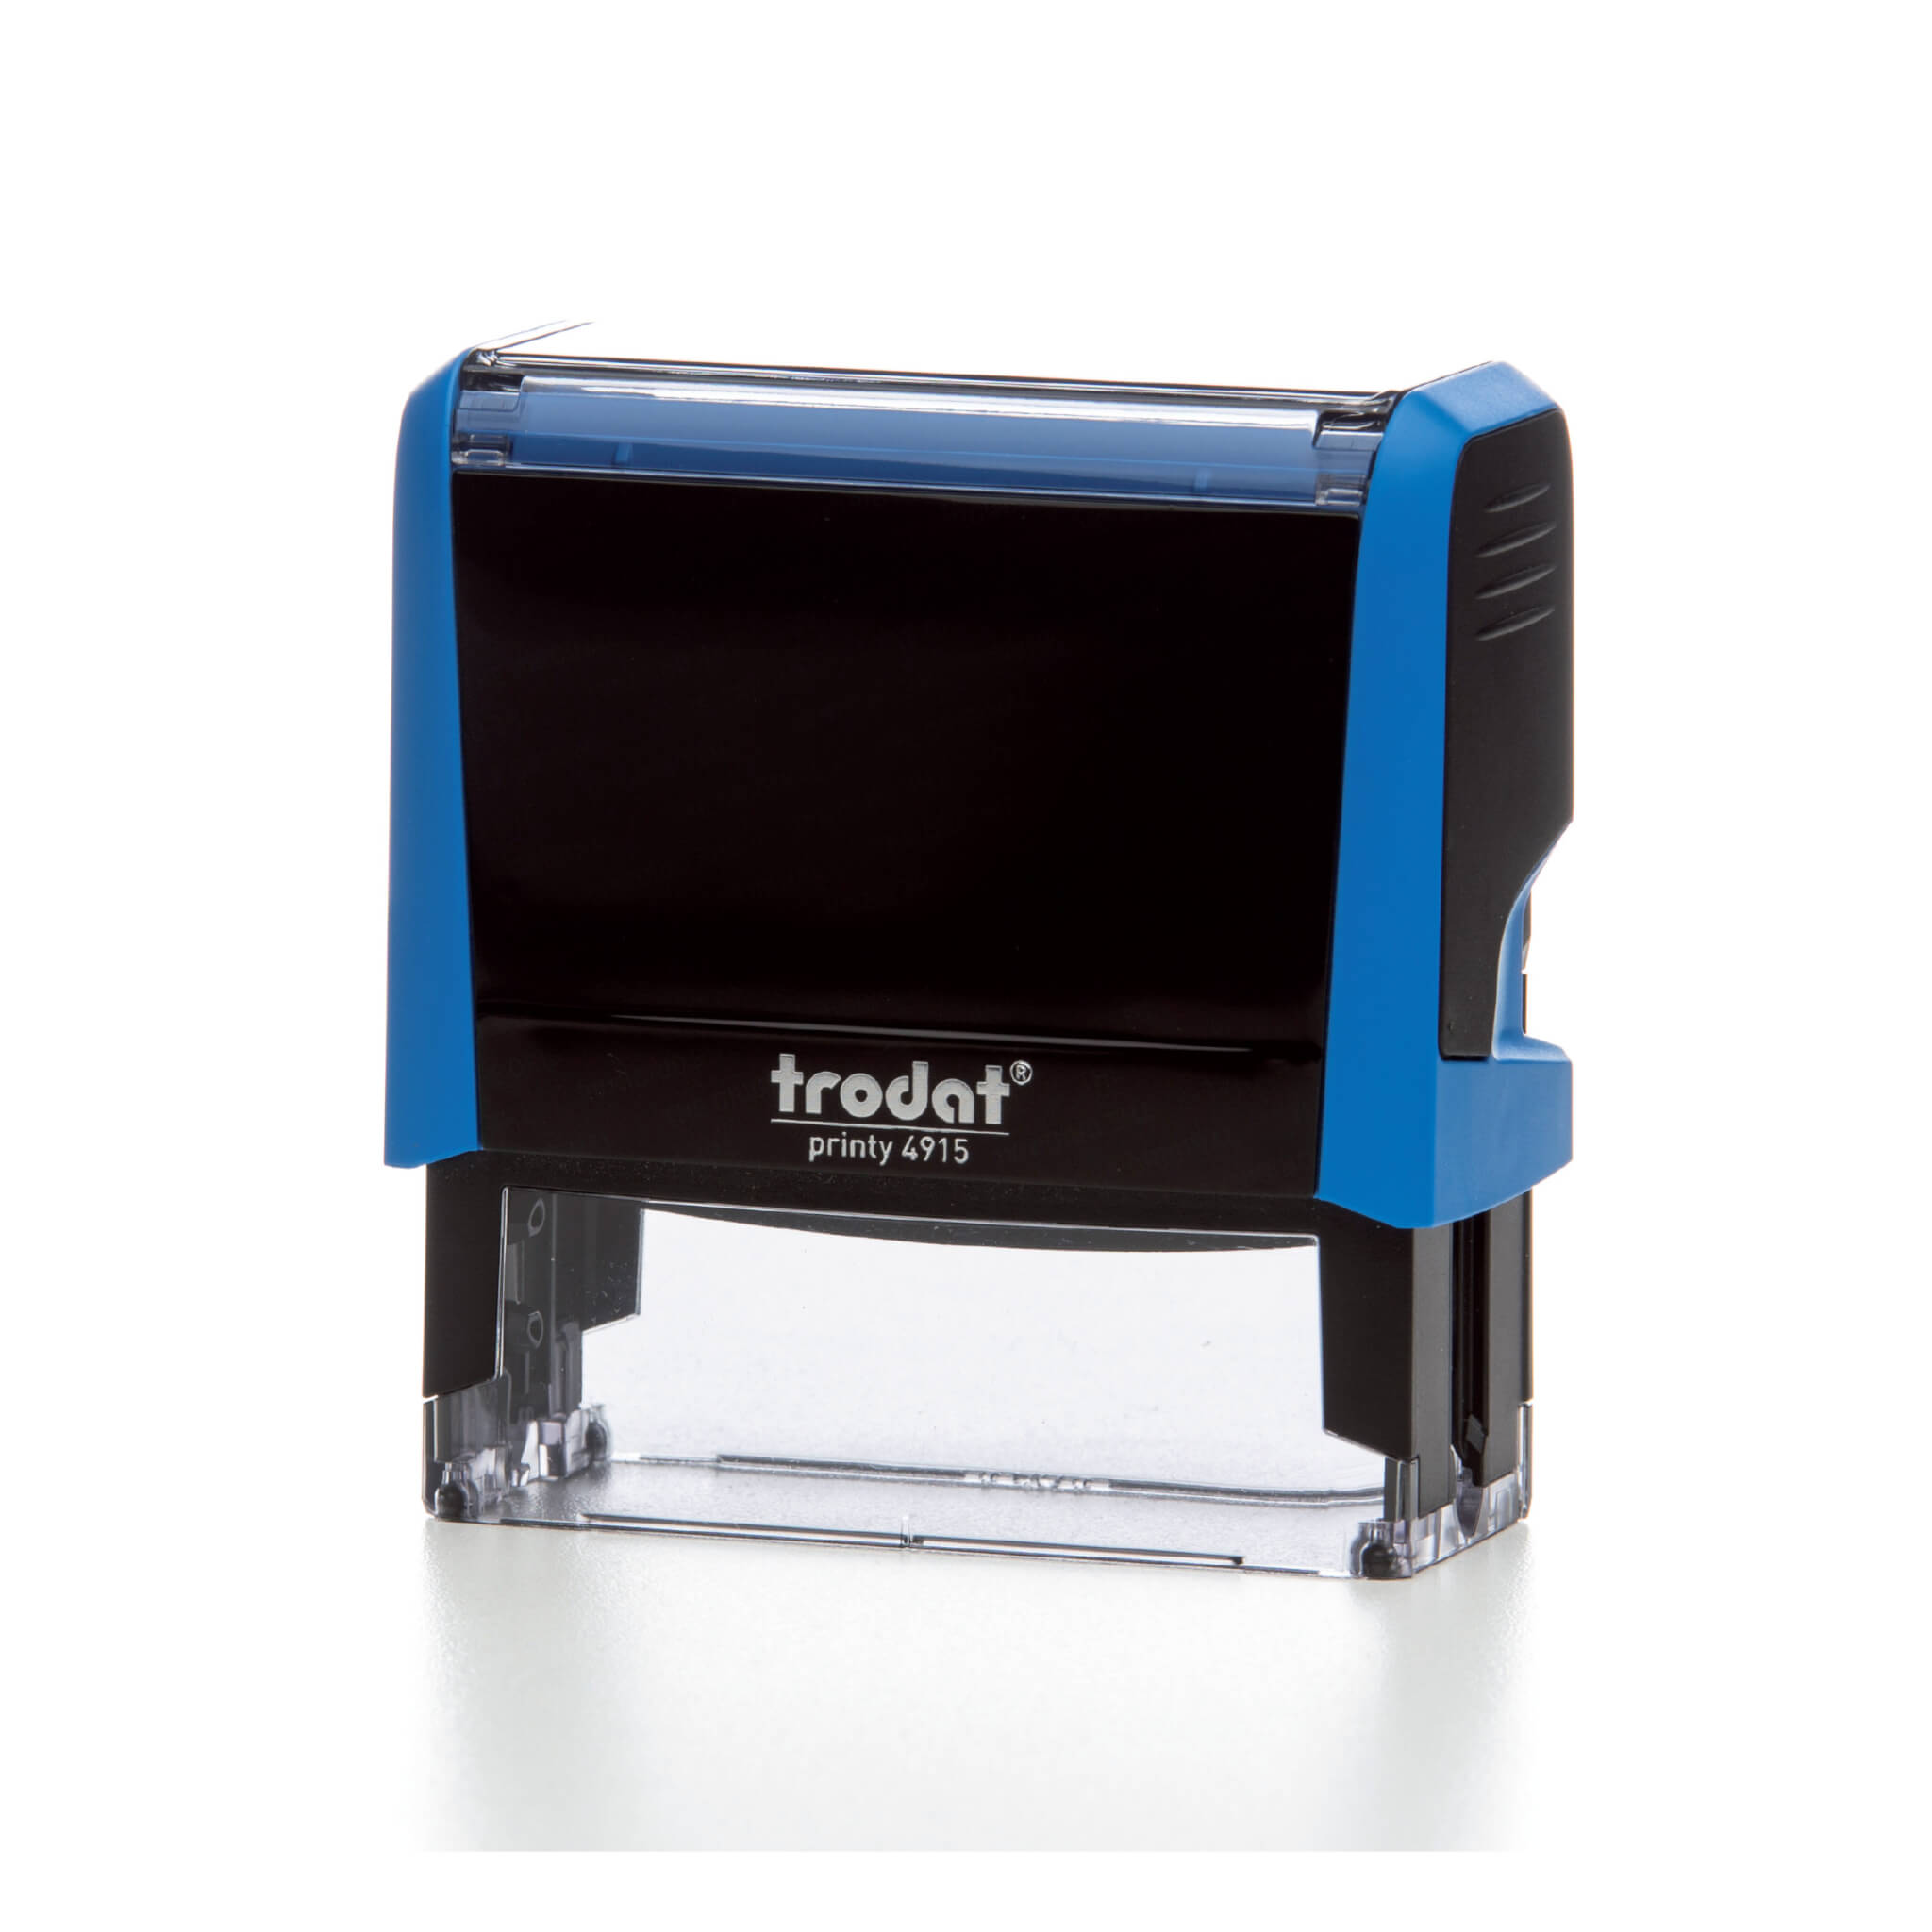 Trodat Printy Self-Inking Date Stamp with Text RECEIVED - Blue